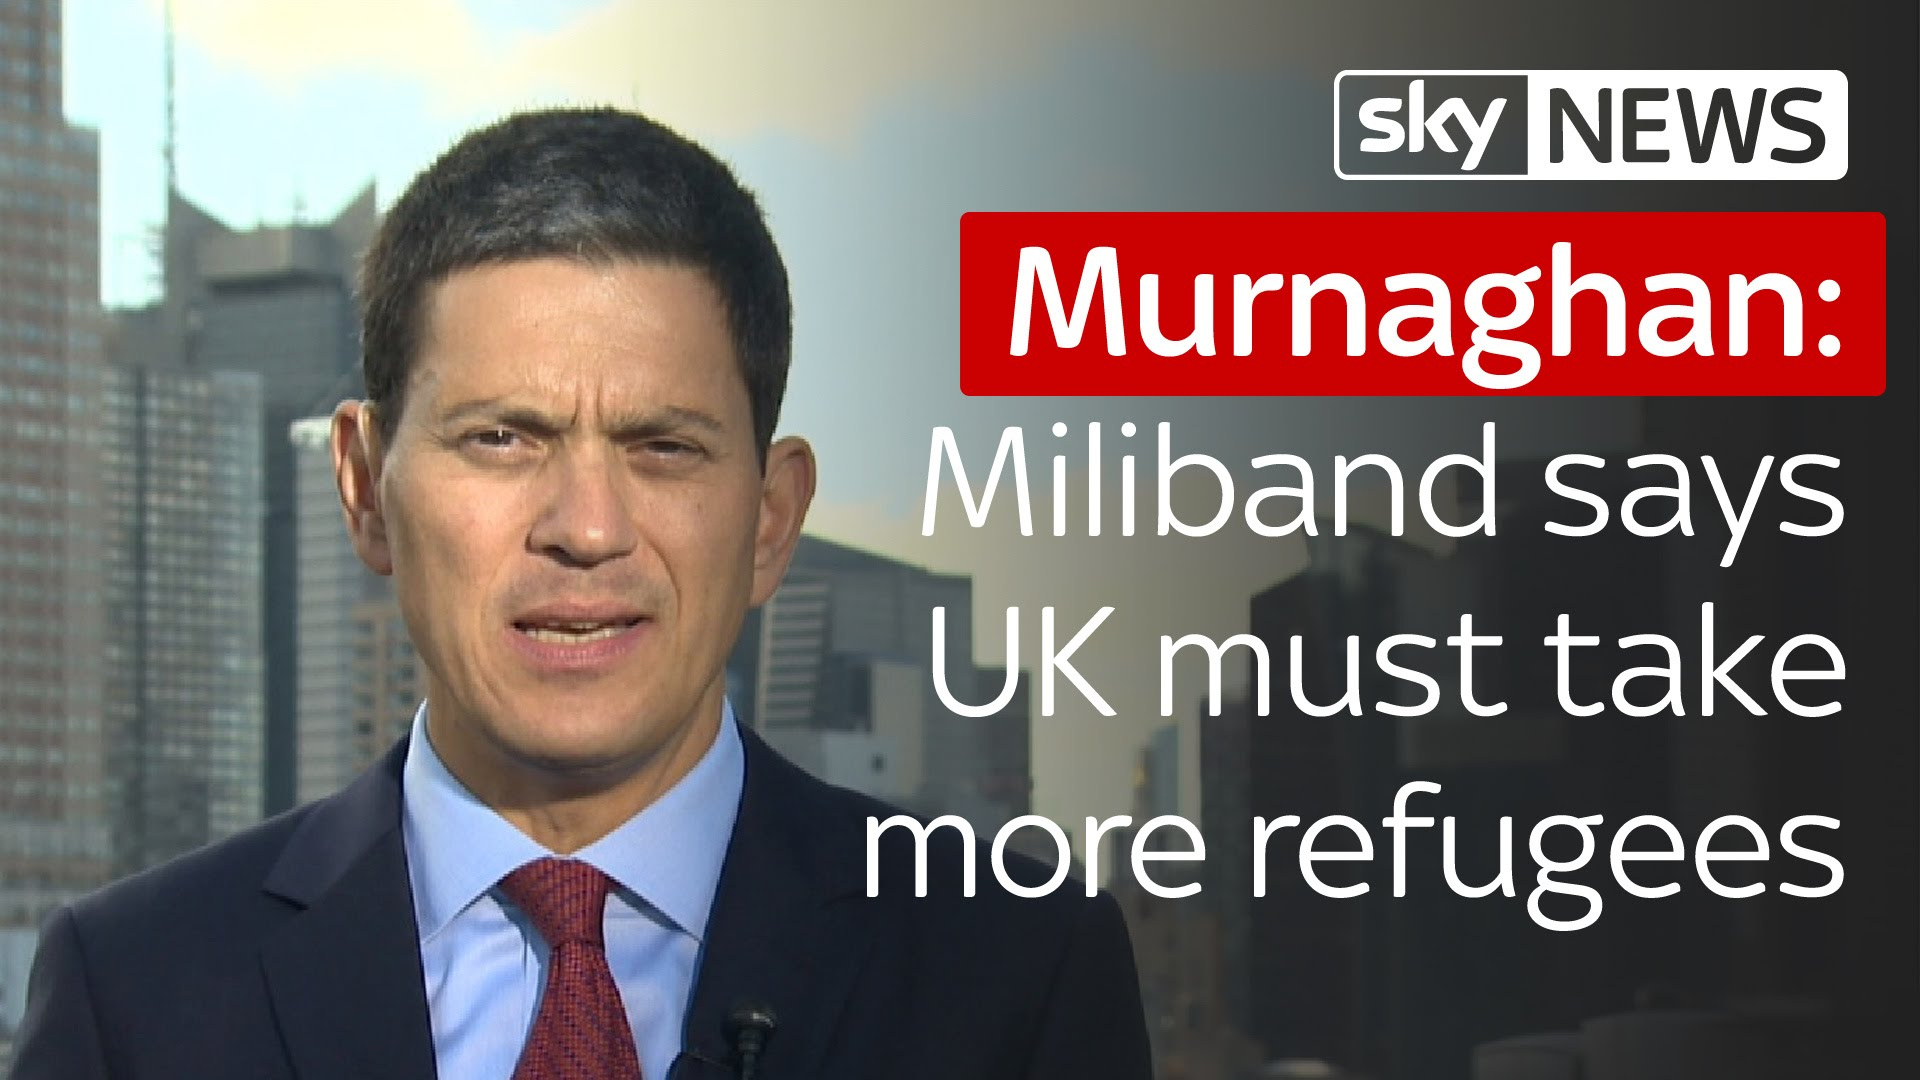 Murnaghan | David Miliband says UK must take four times as many refugees 3